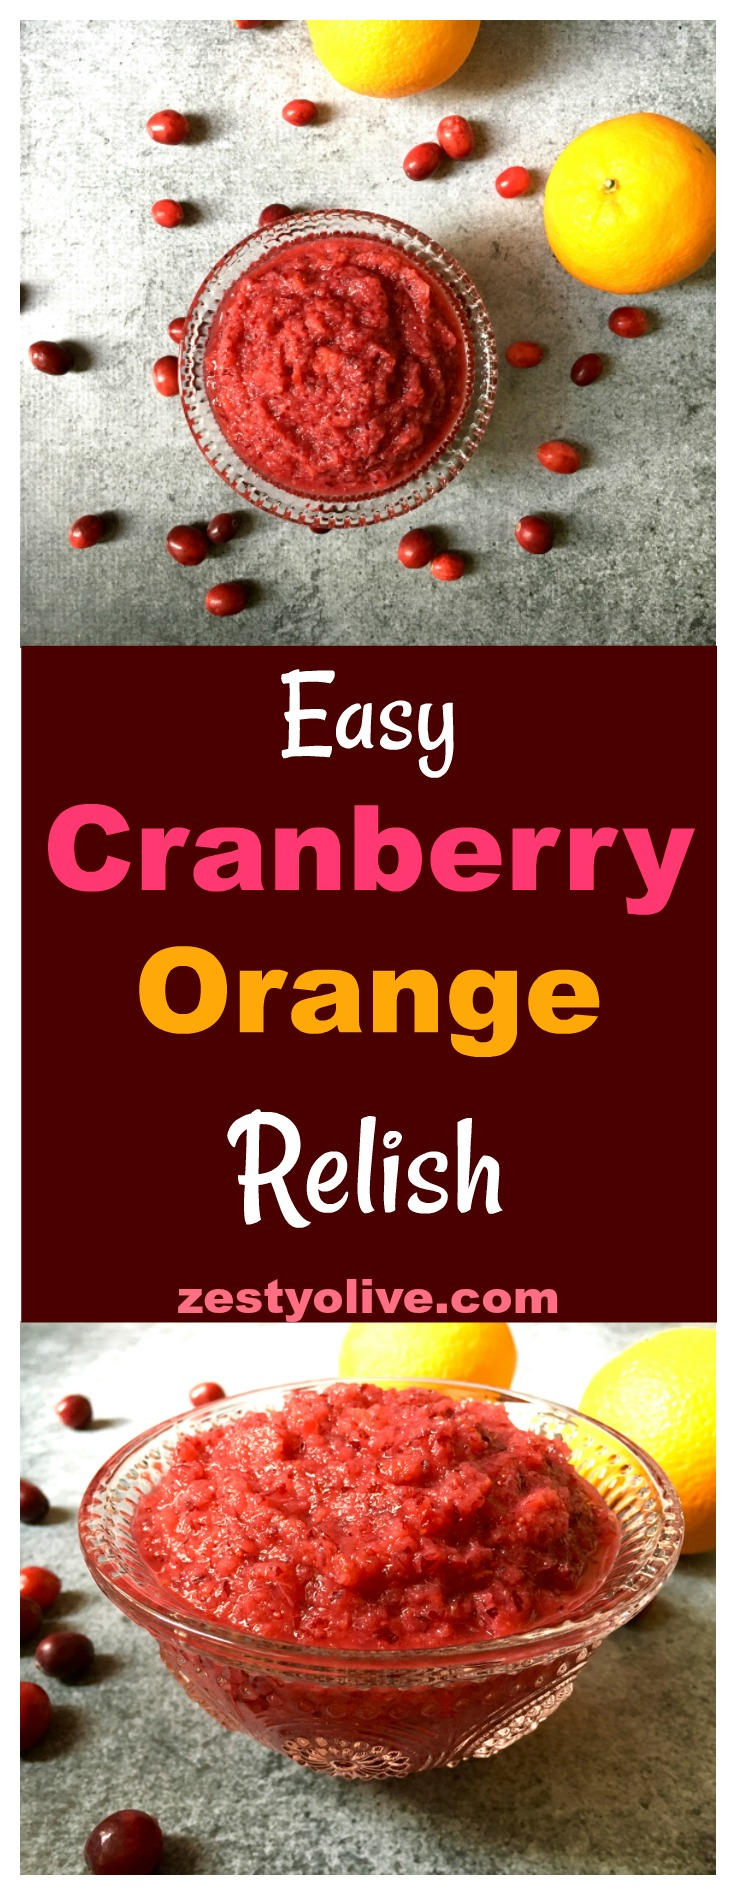 Easy Cranberry Orange Relish